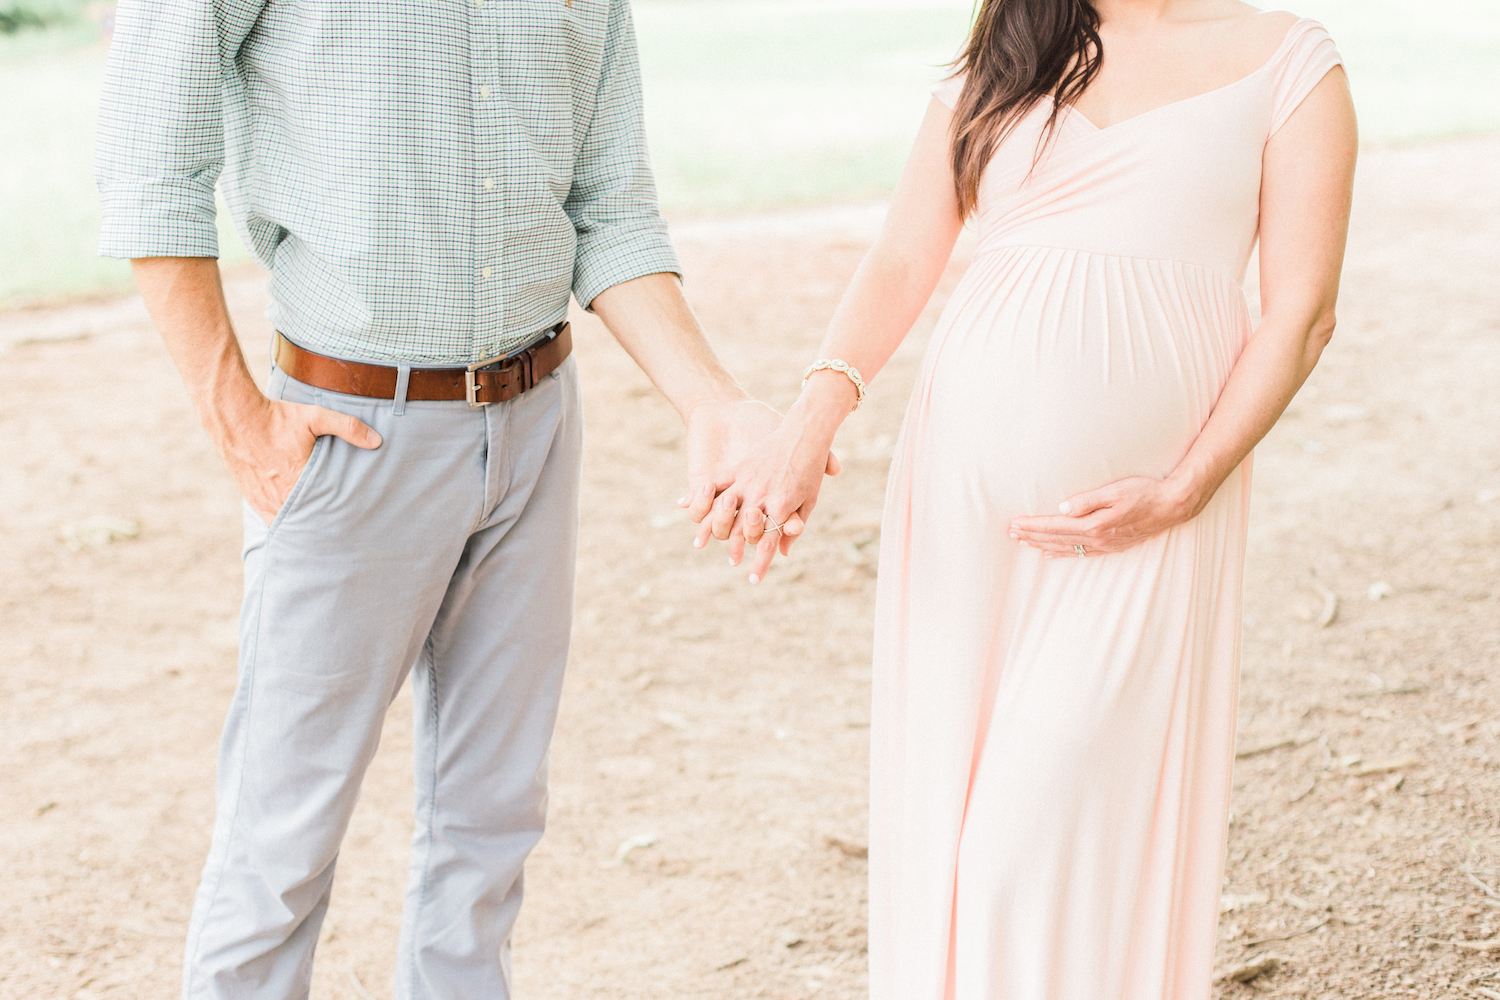 Family session with pastel outfits. Blush maternity dress. Maternity bump.